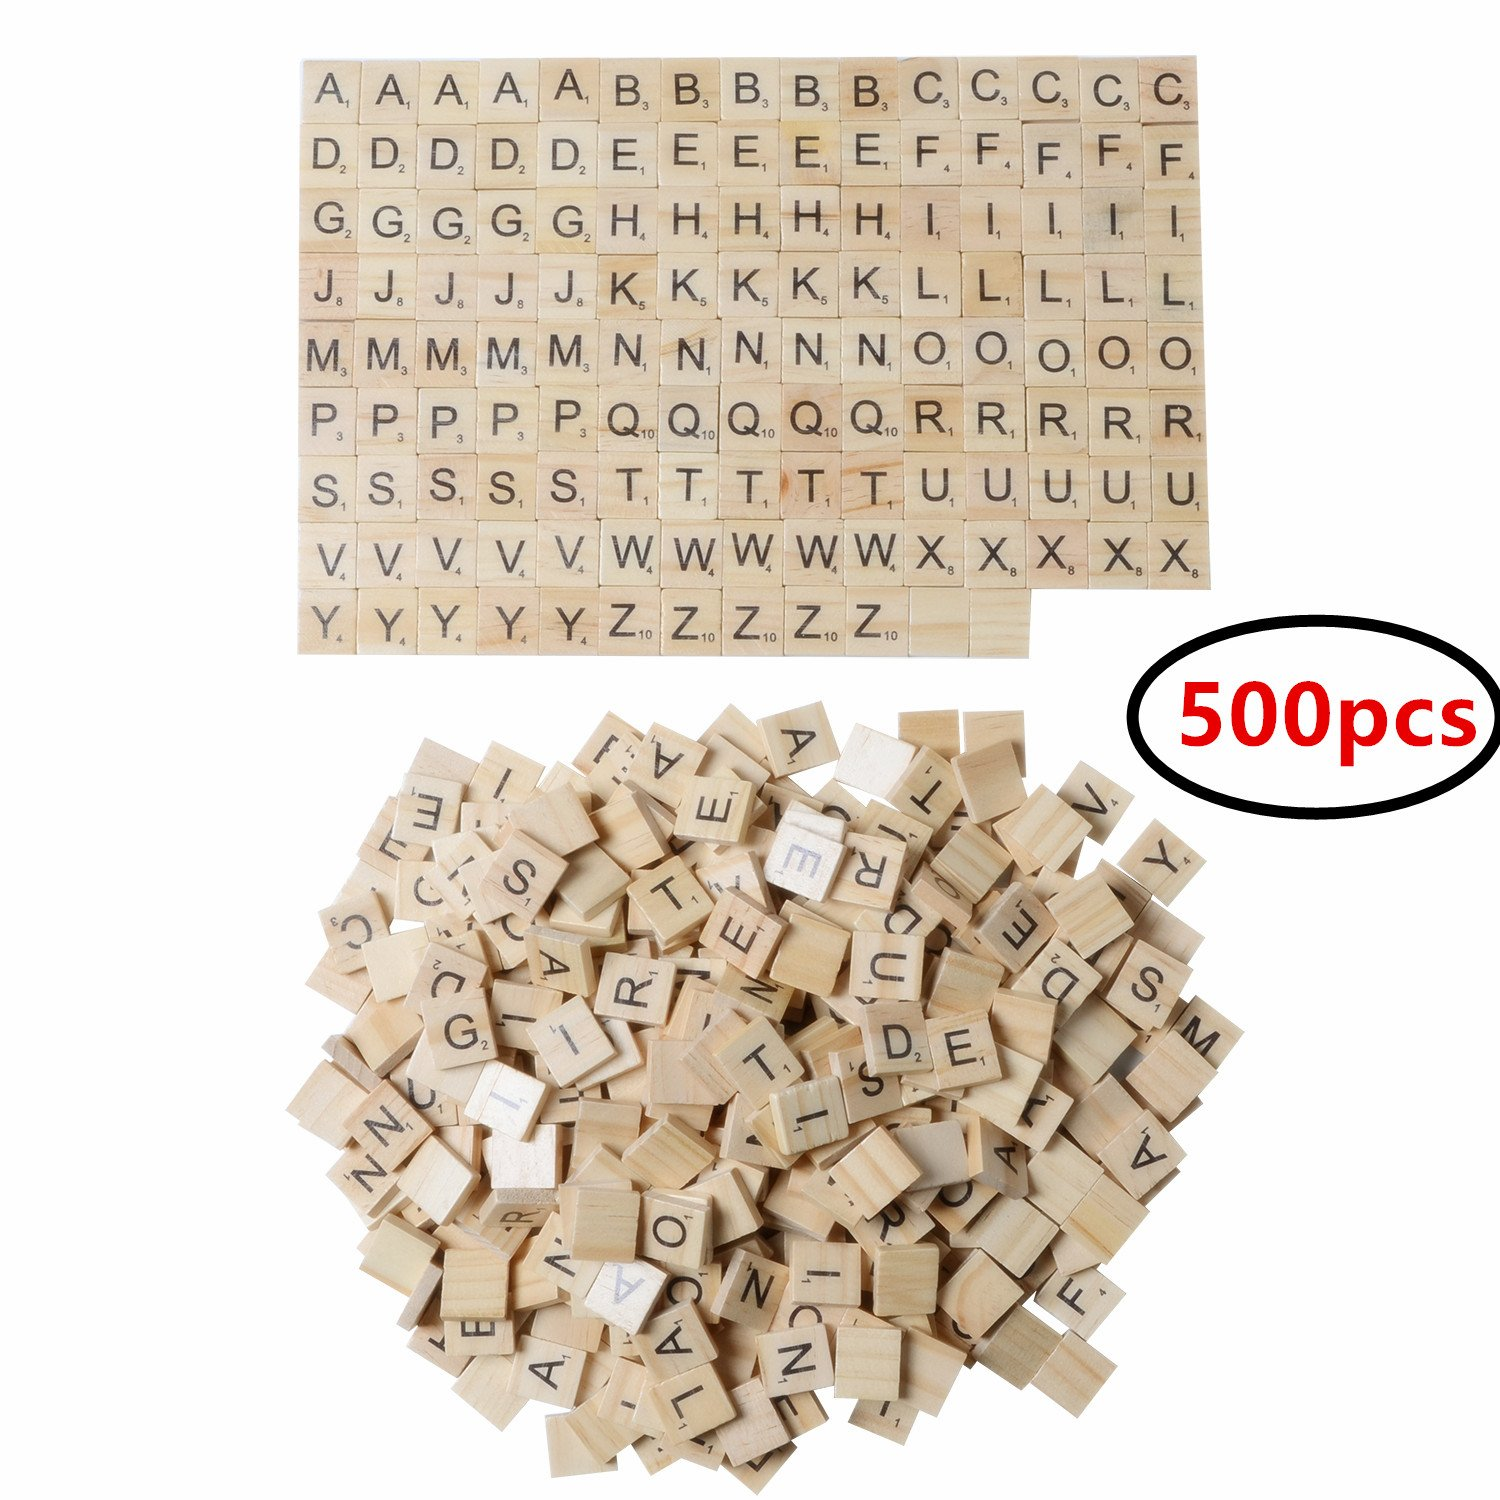 XADP 500 Wooded Scrabble Tiles Letter Tiles Wood Pieces-5 Full Sets of 100 Letters-Great for Crafts, Pendants, Spelling